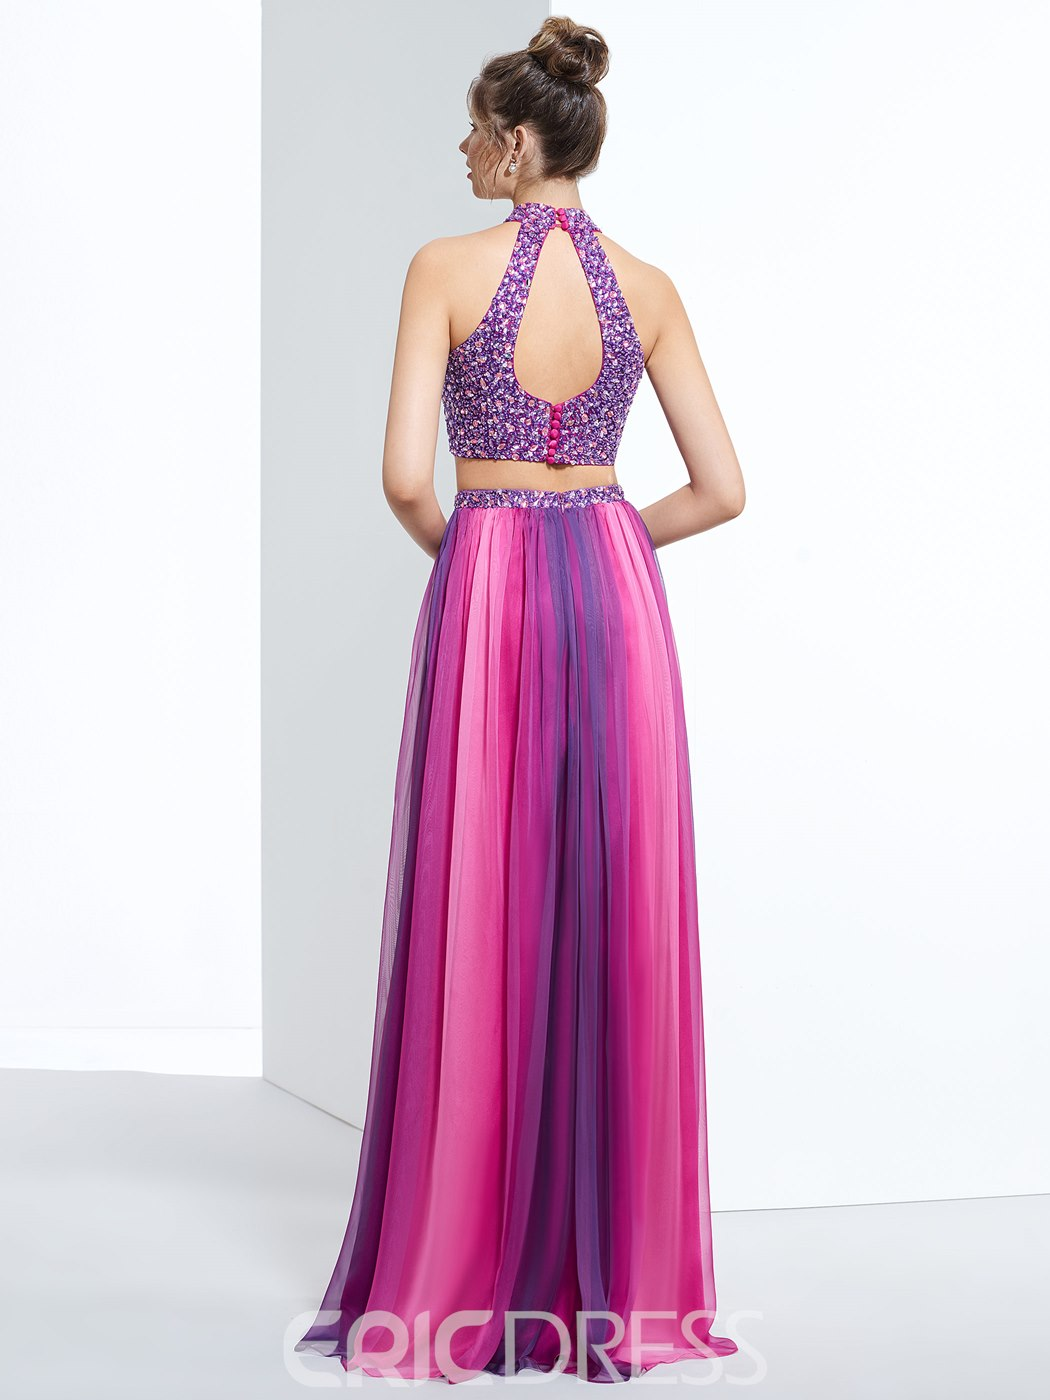 Ericdress Two Pieces A-Line Halter Split-Front Prom Dress With Beading And Sequins